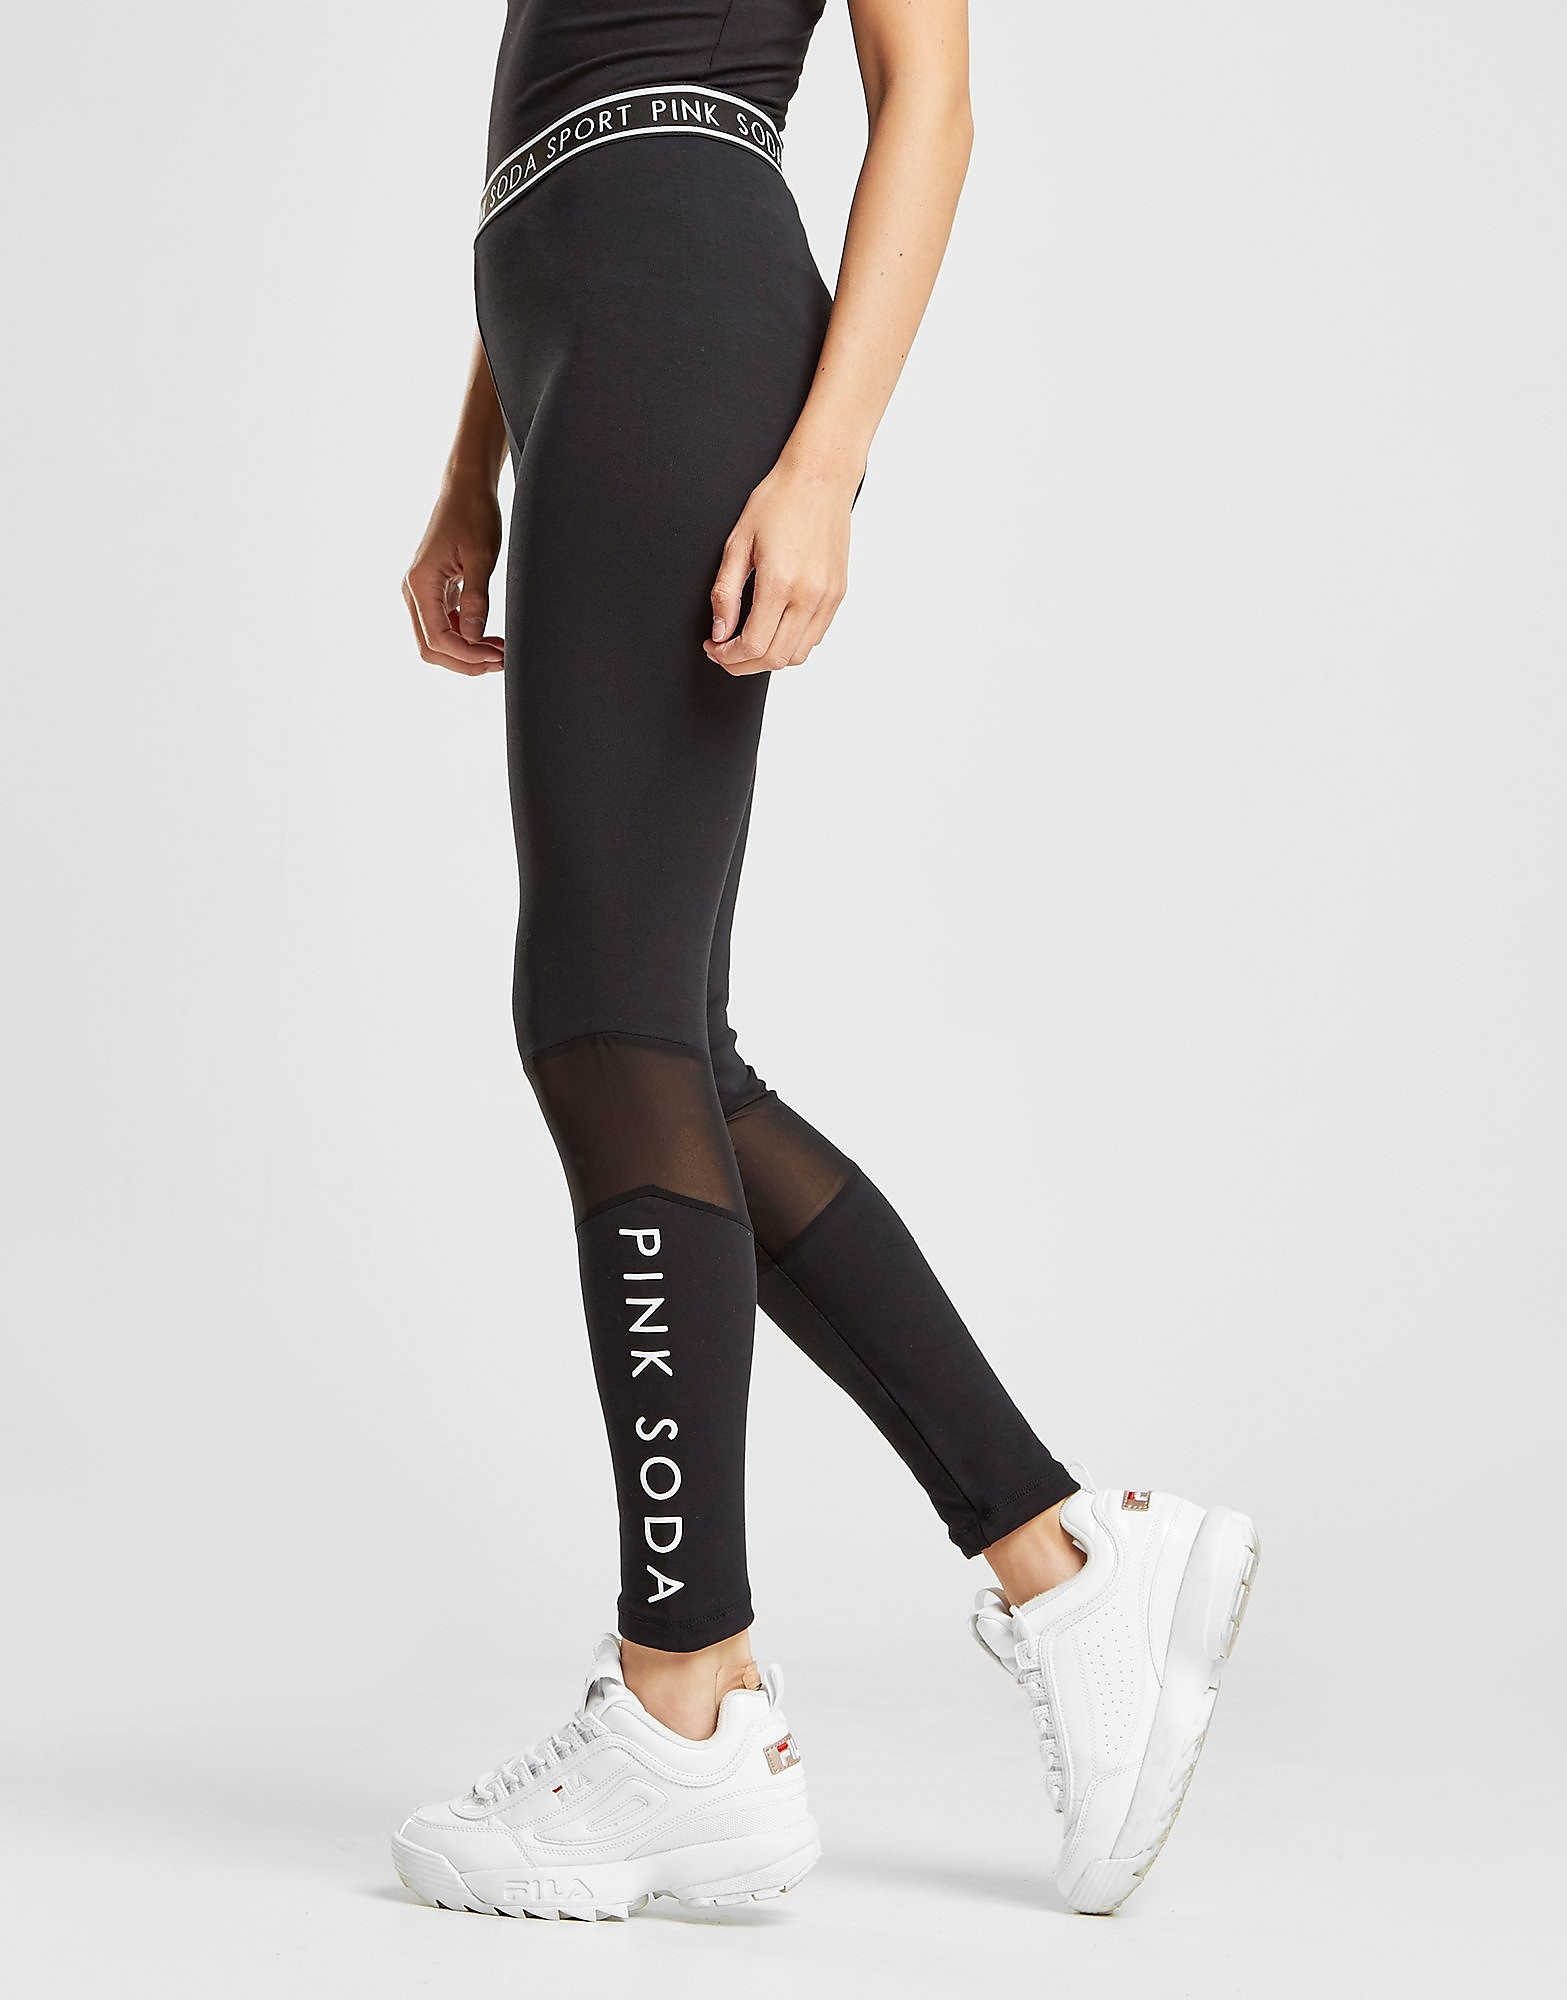 Pink Soda Sport Mesh Cut Lifestyle Leggings